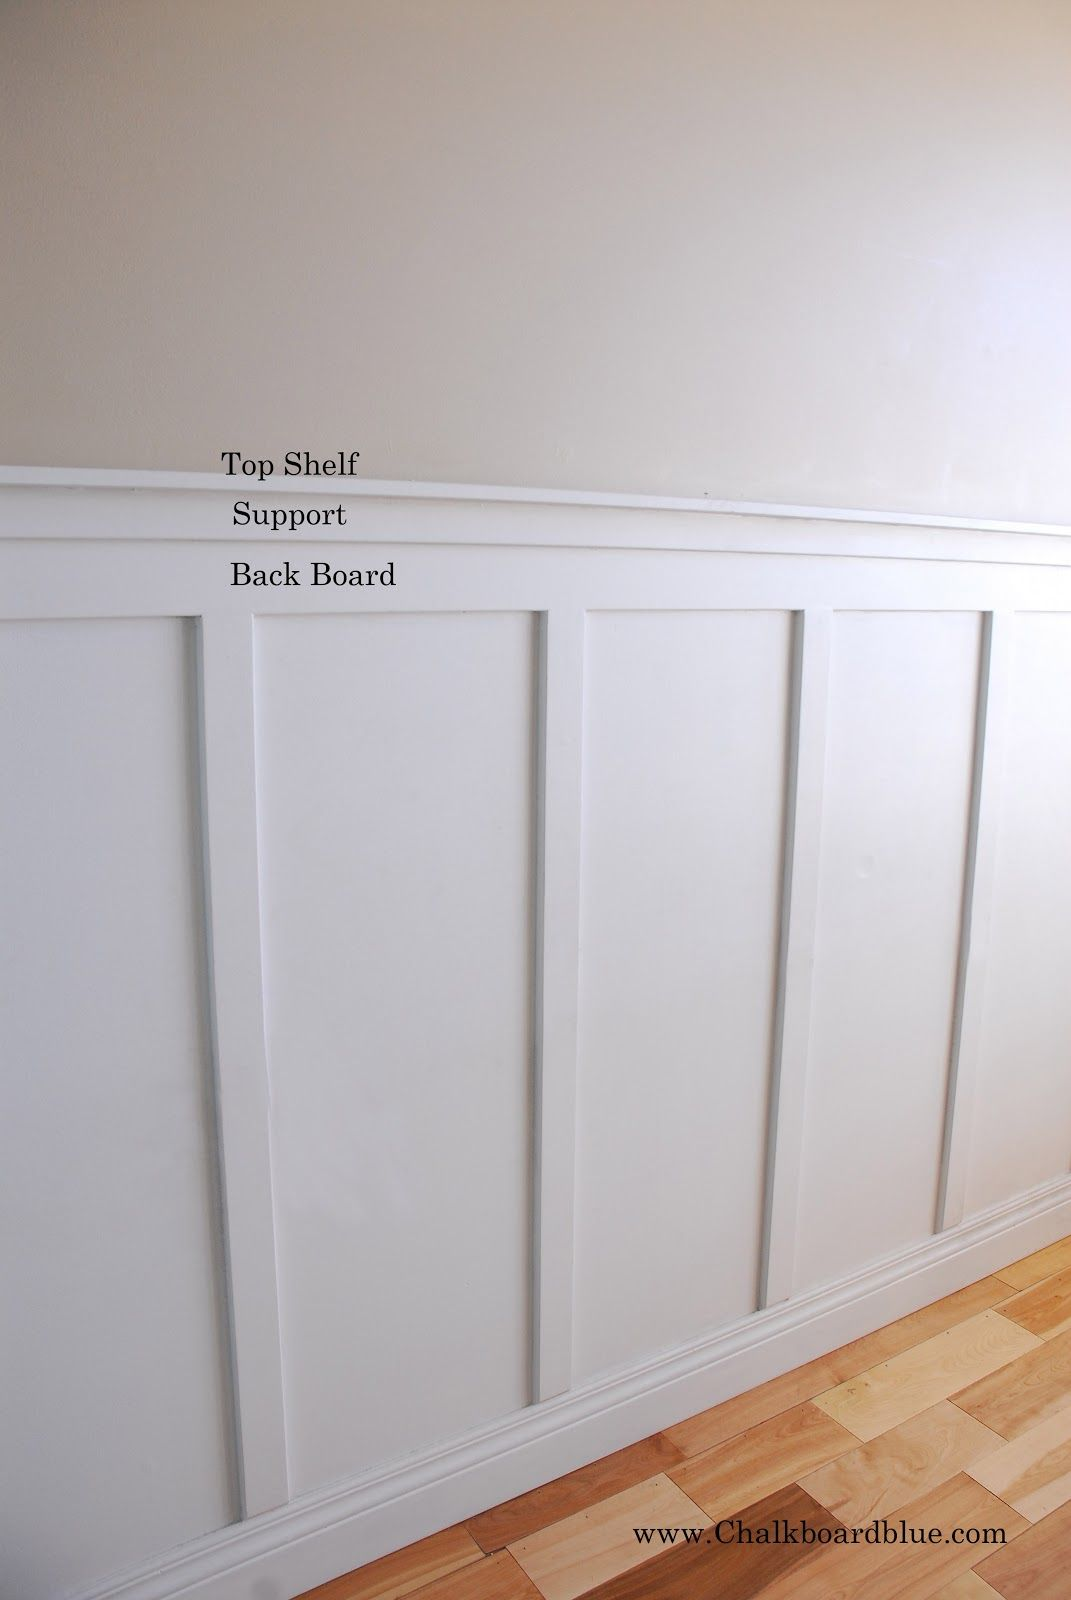 How To Do Board And Batten Trim Wood Trim Board And Batten Wall Trim Molding